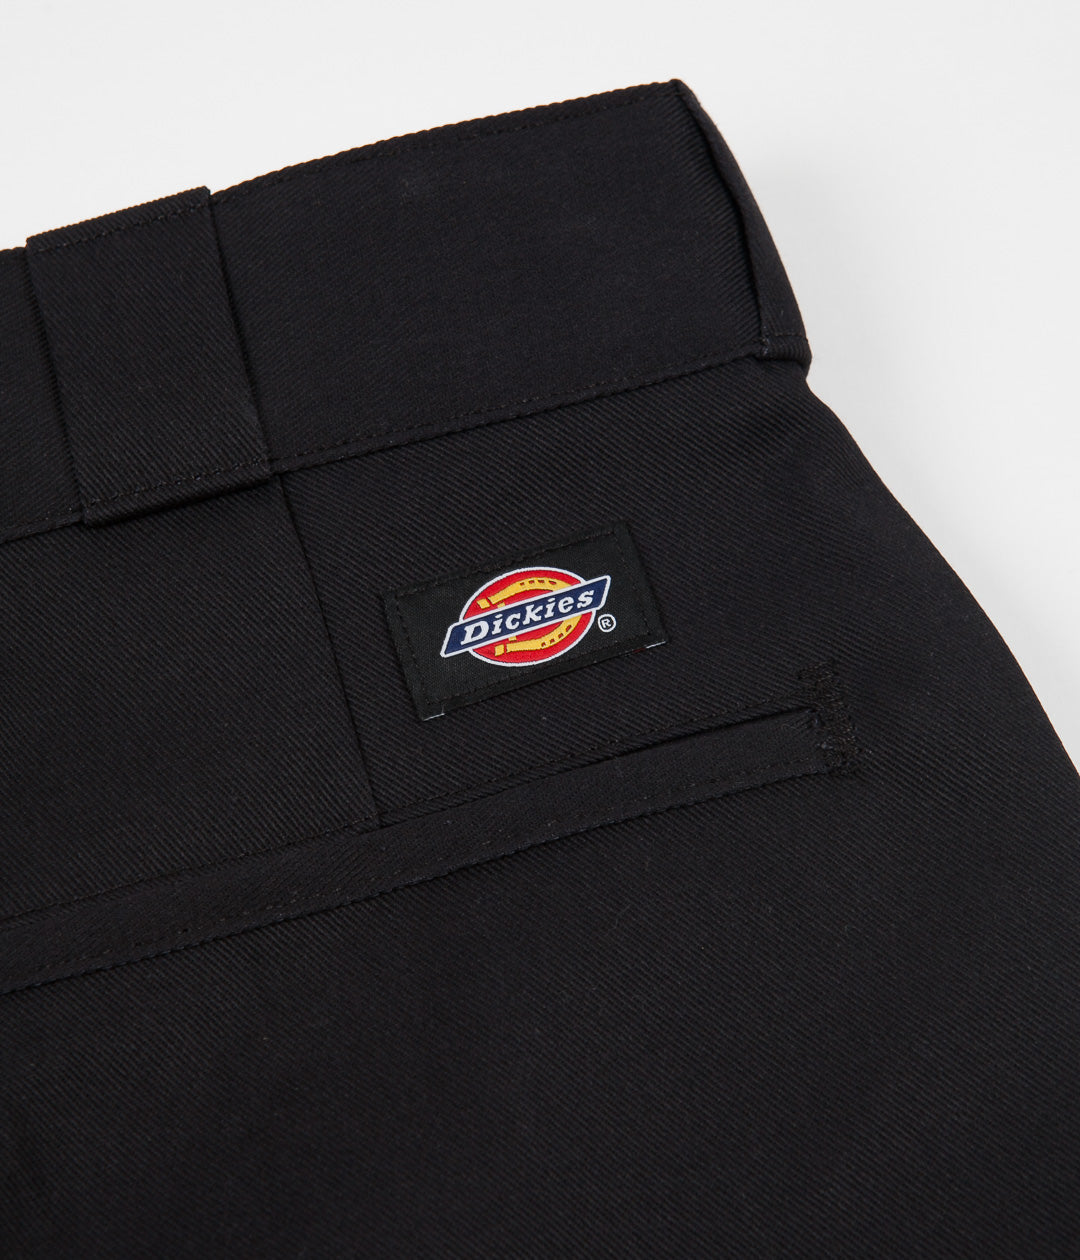 Dickies Original 874 Work Trousers - Black